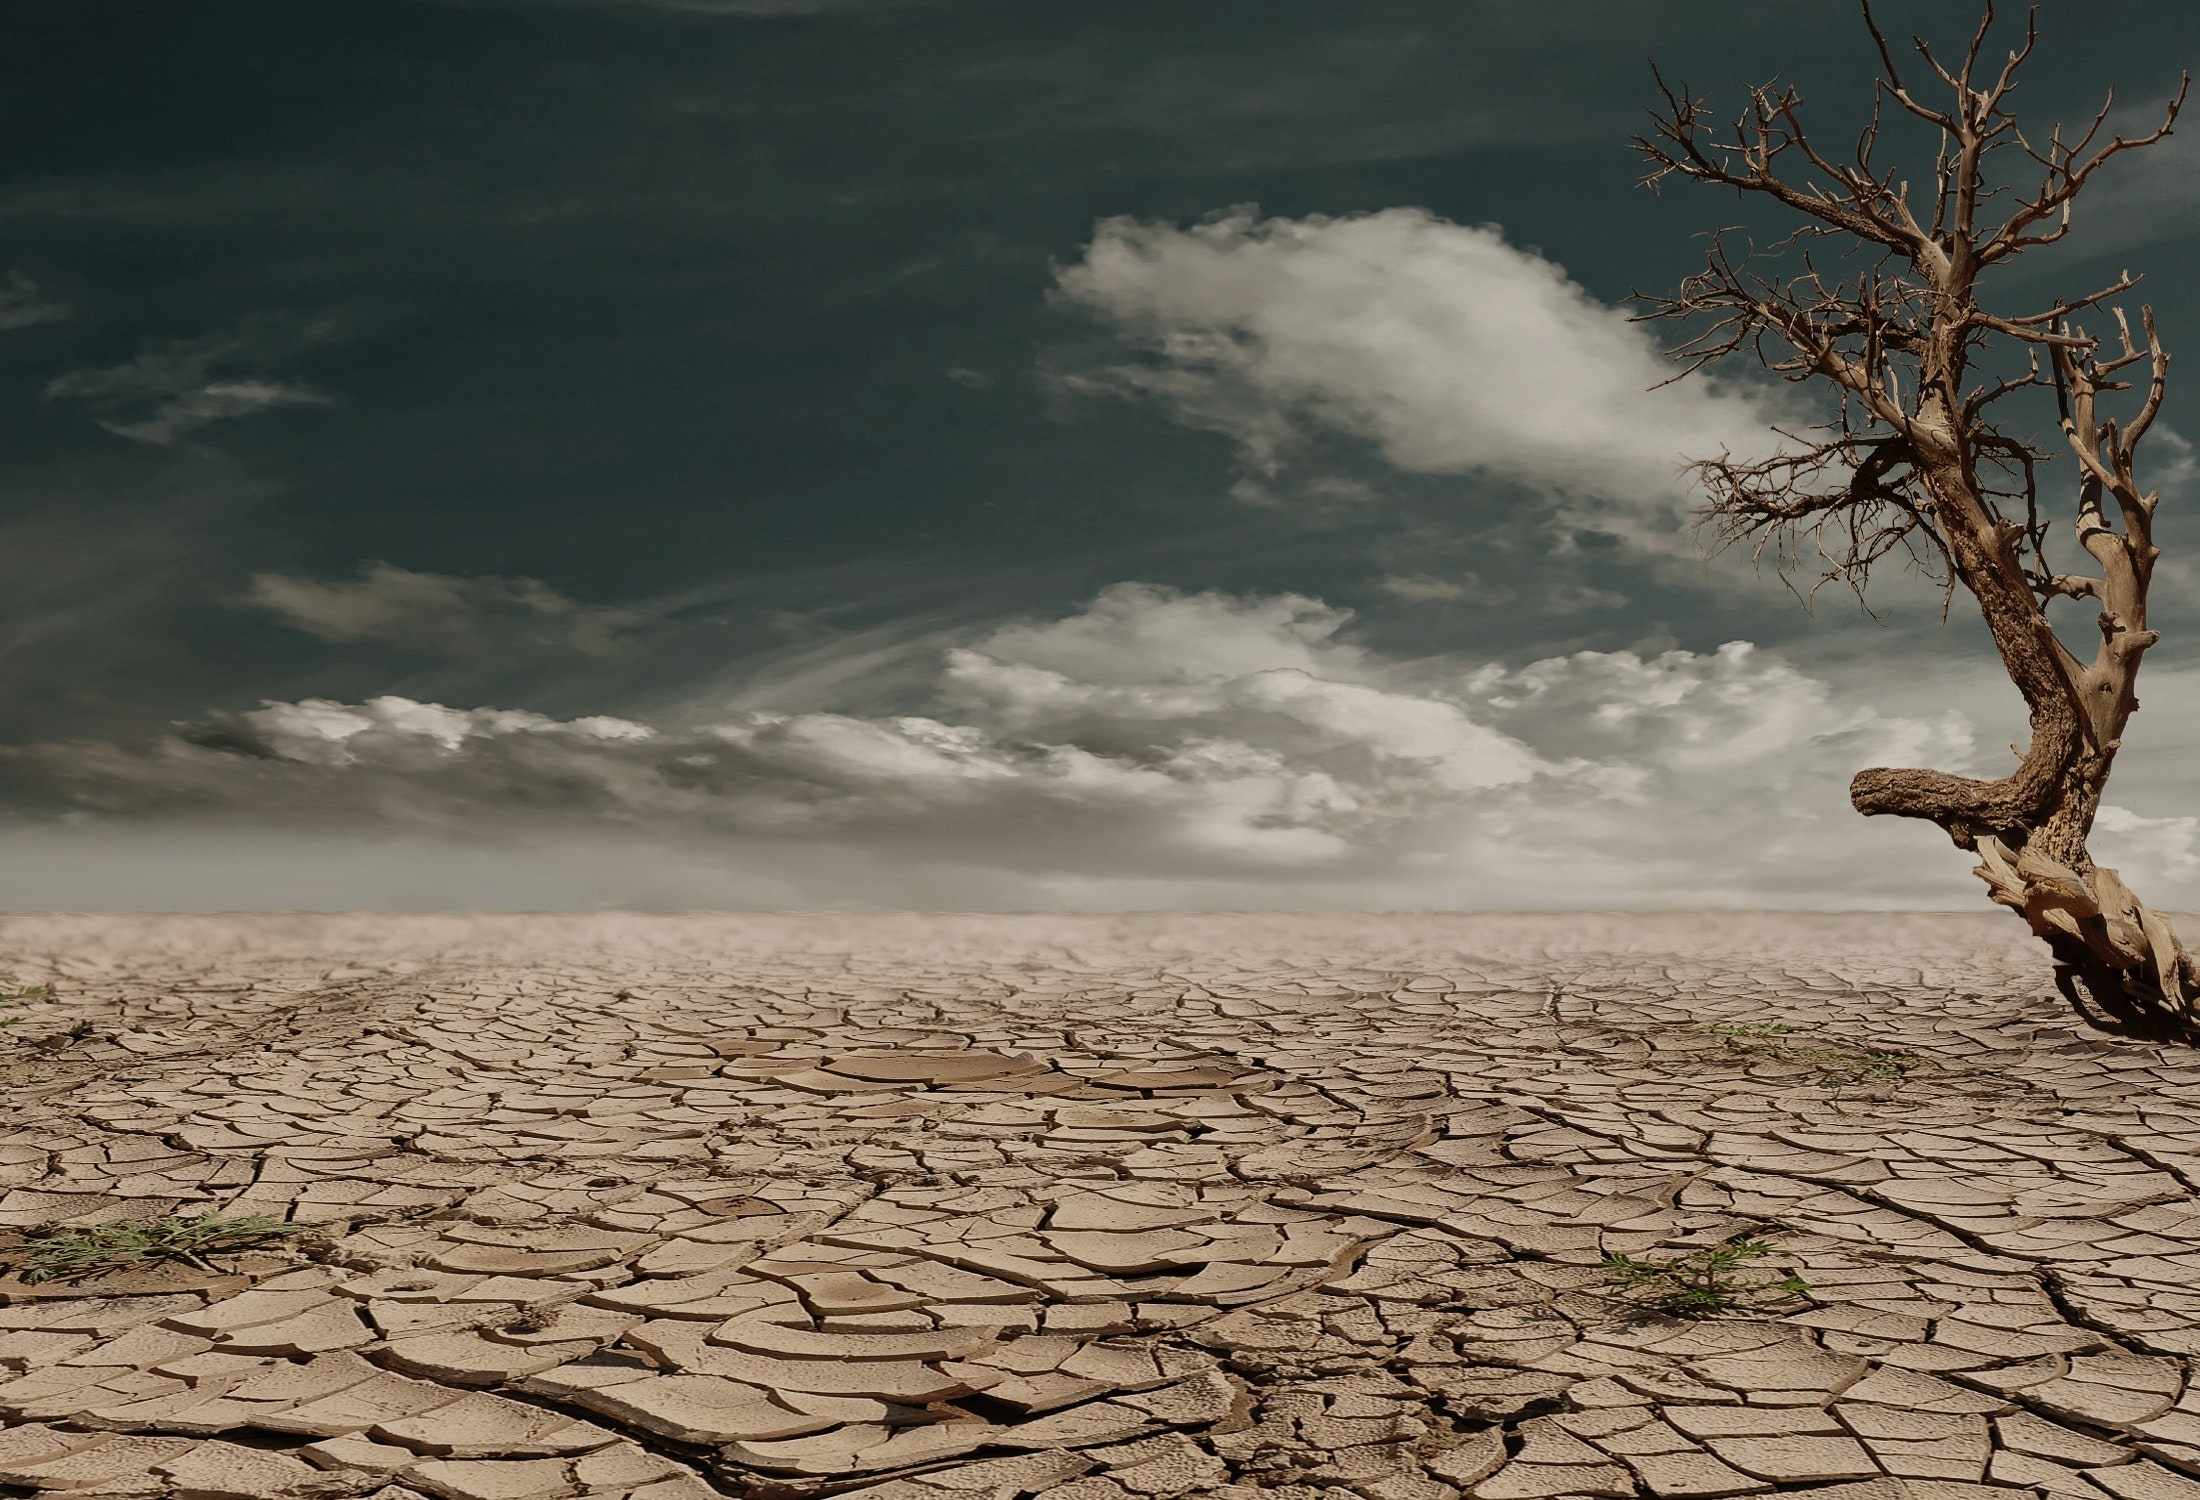 arid-climate-change-clouds-60013.jpg